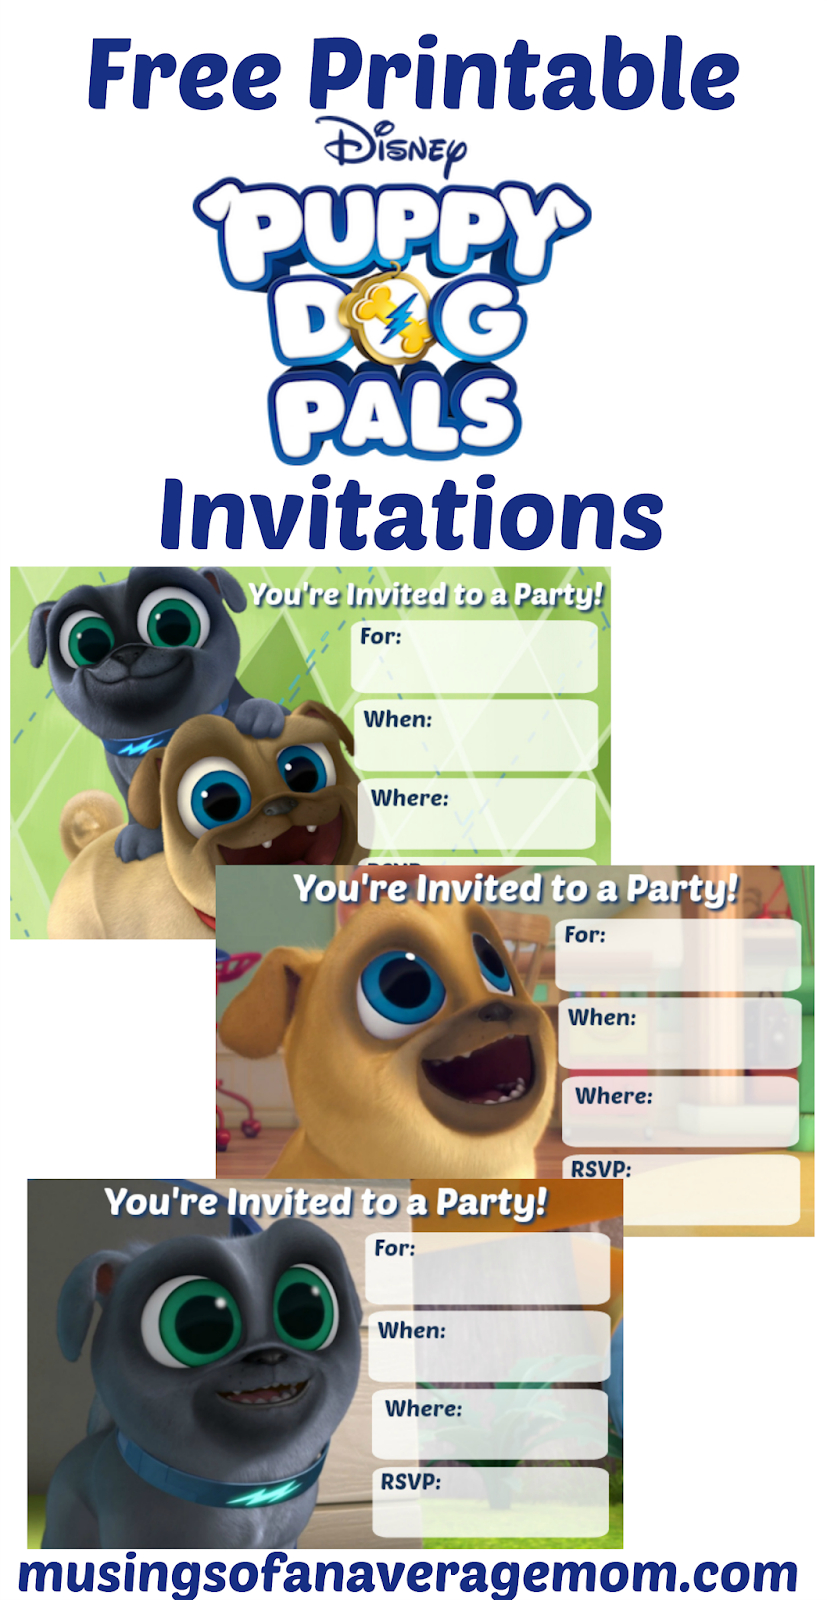 Musings Of An Average Mom: Puppy Dog Pals Invitations - Free Printable Puppy Dog Birthday Invitations